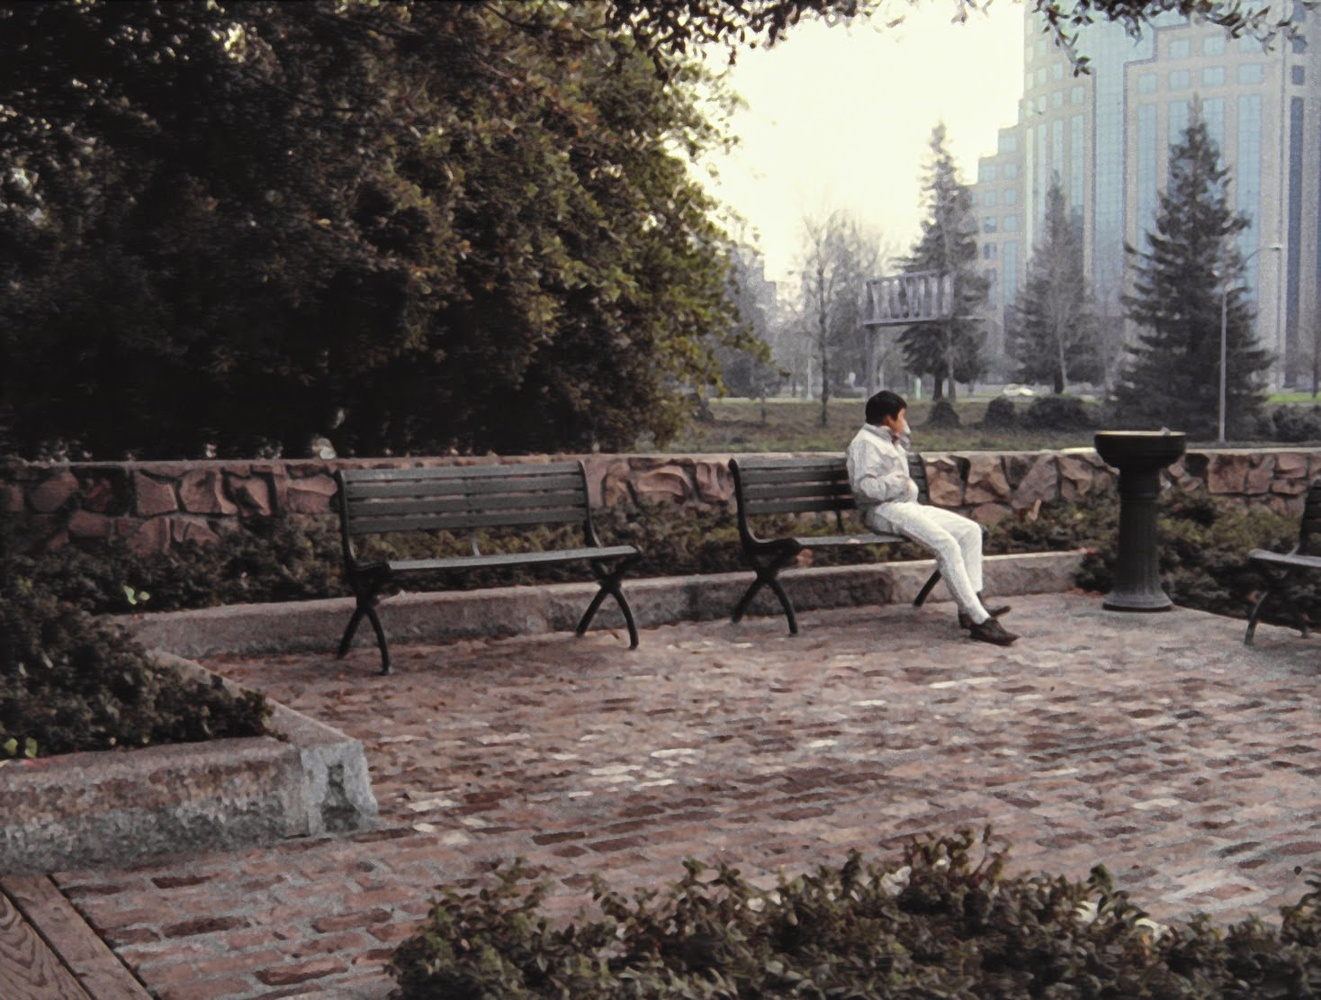 Man on Bench  by Dudley Didereaux